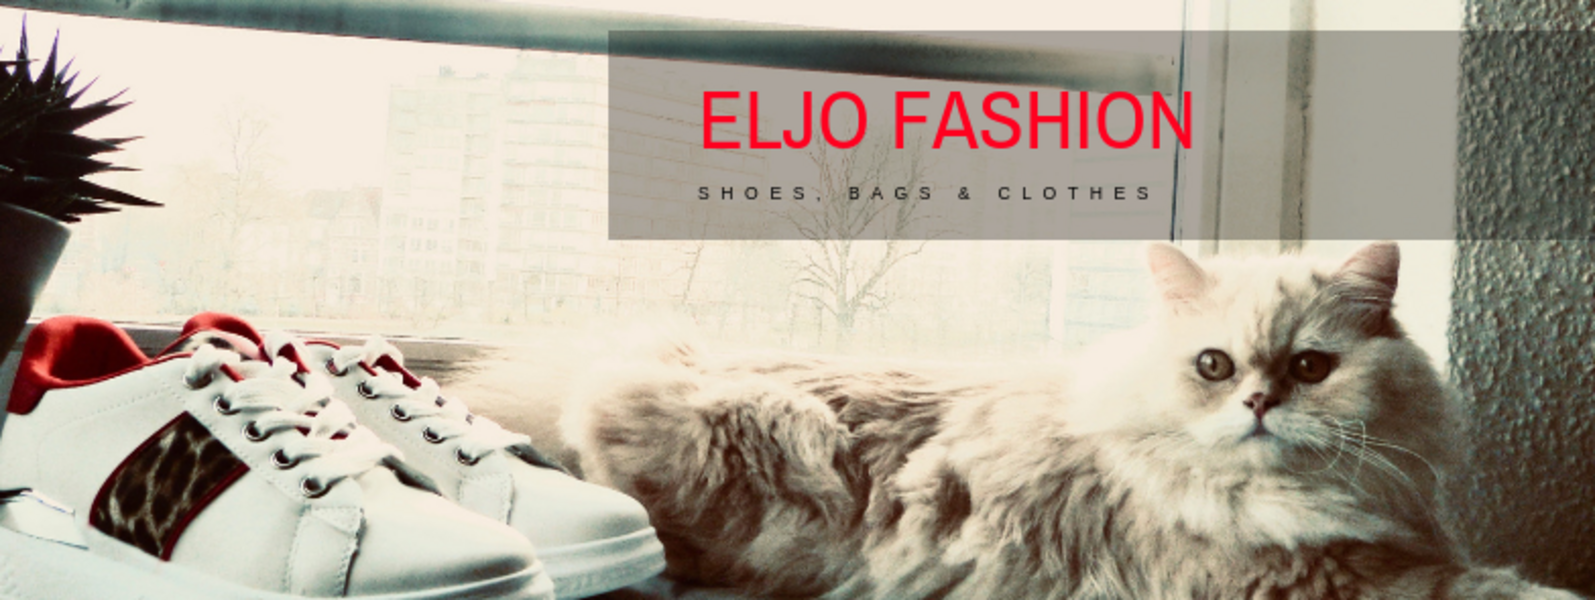 Header Eljo Fashion in Sint-Truiden